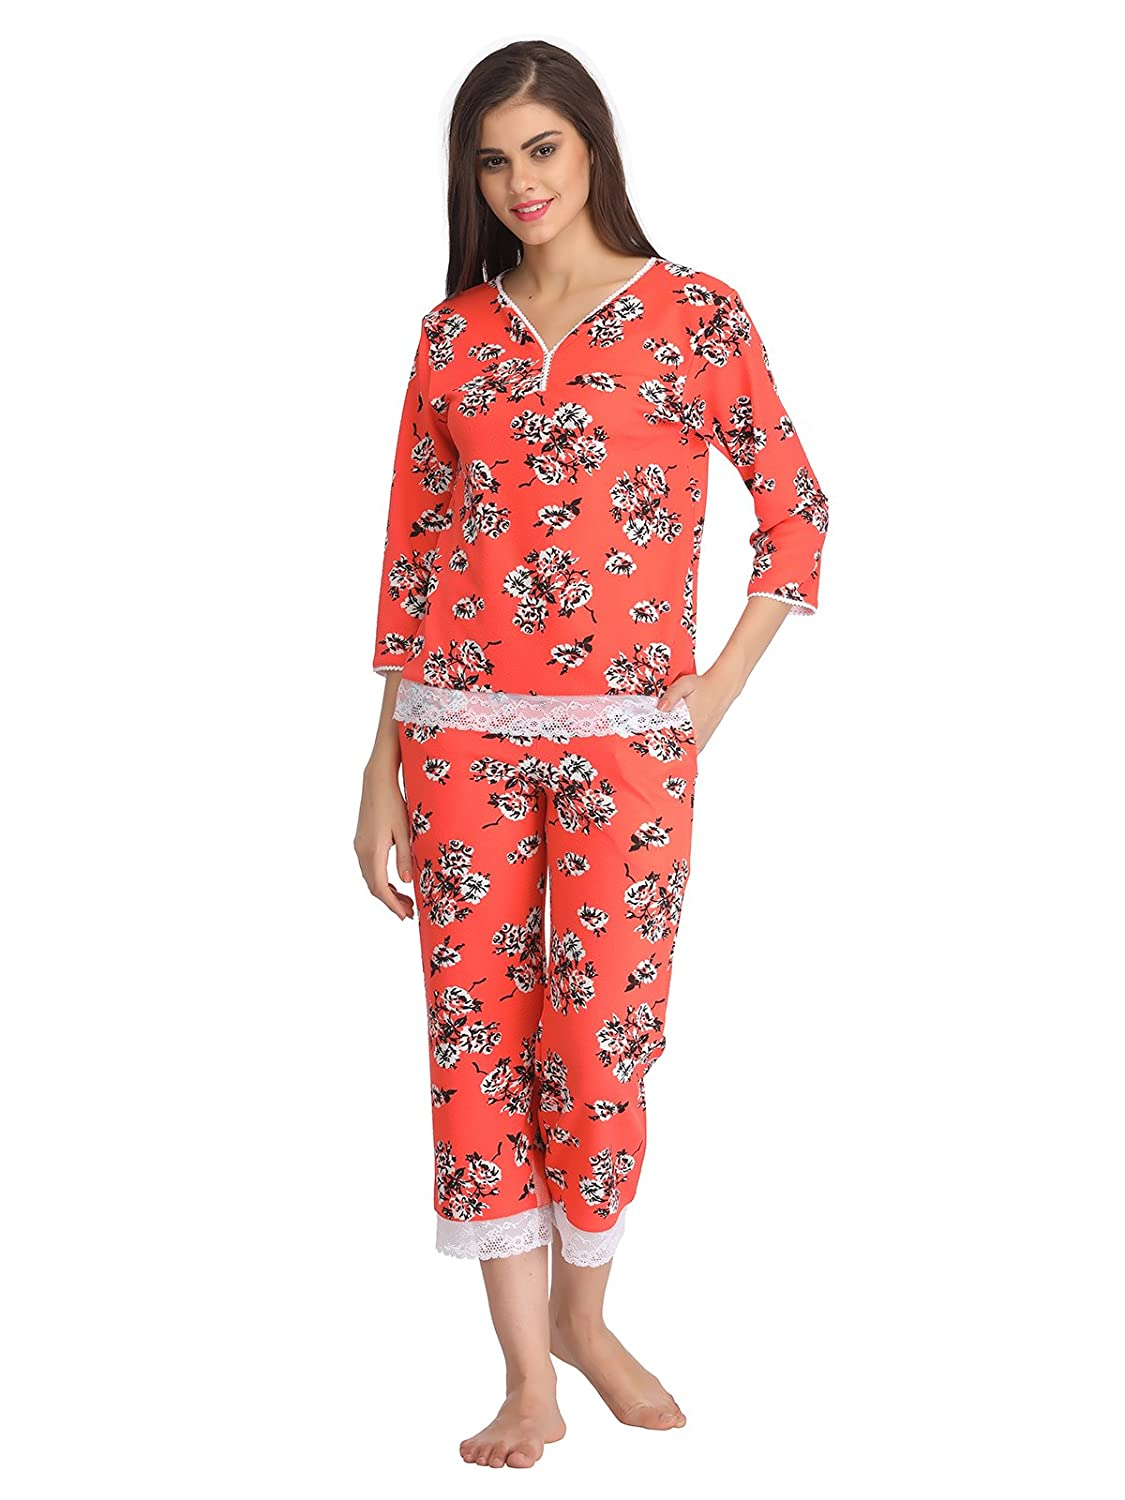 Clovia Floral Print Top and Capri Set With Lace Hem - Orange